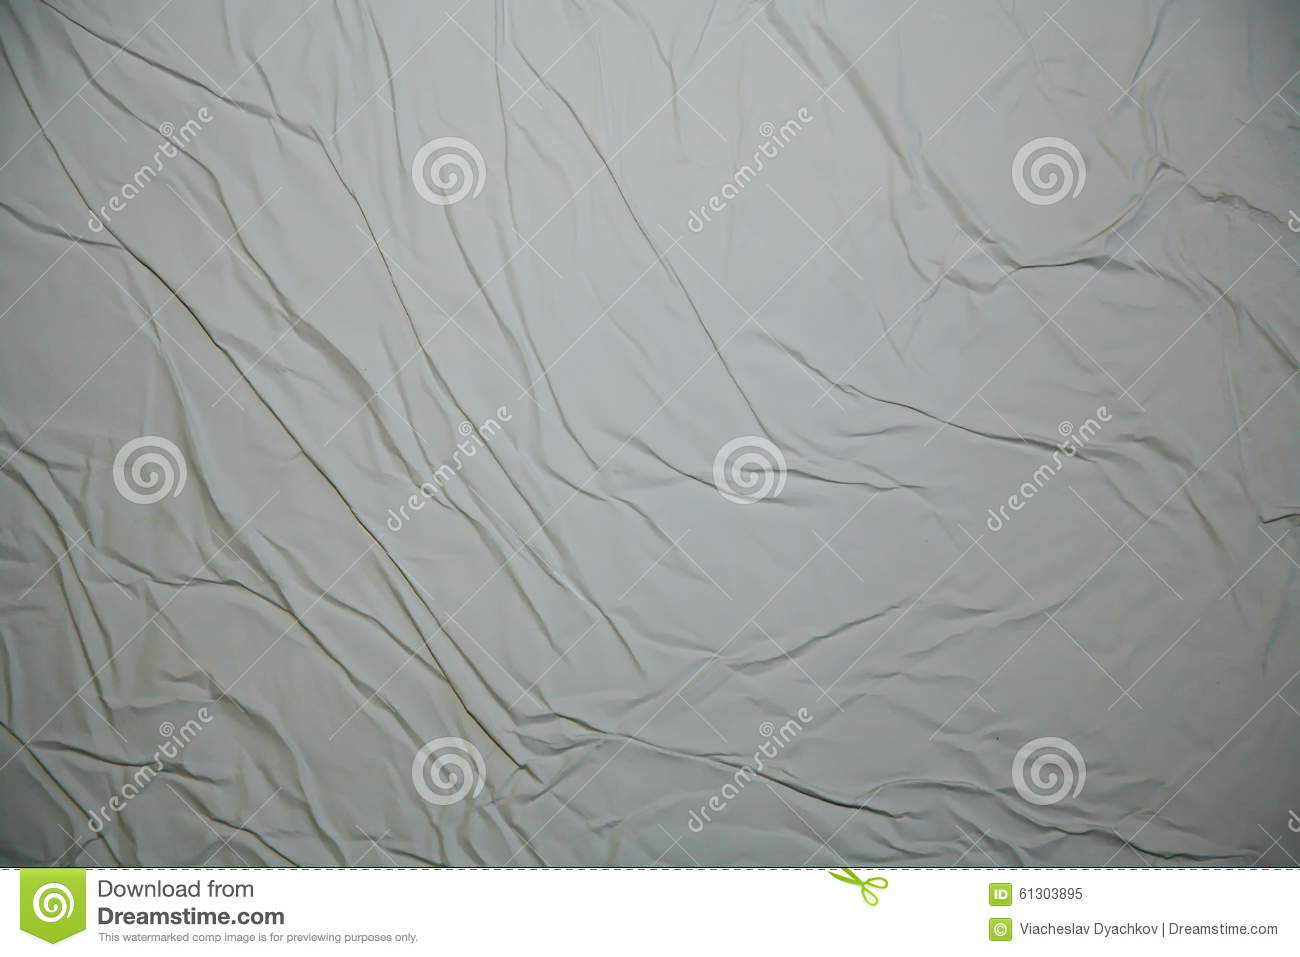 Rumpled bed sheet - The Wet Texture Of Crumpled White Paper Or Crumpled Bed Linen